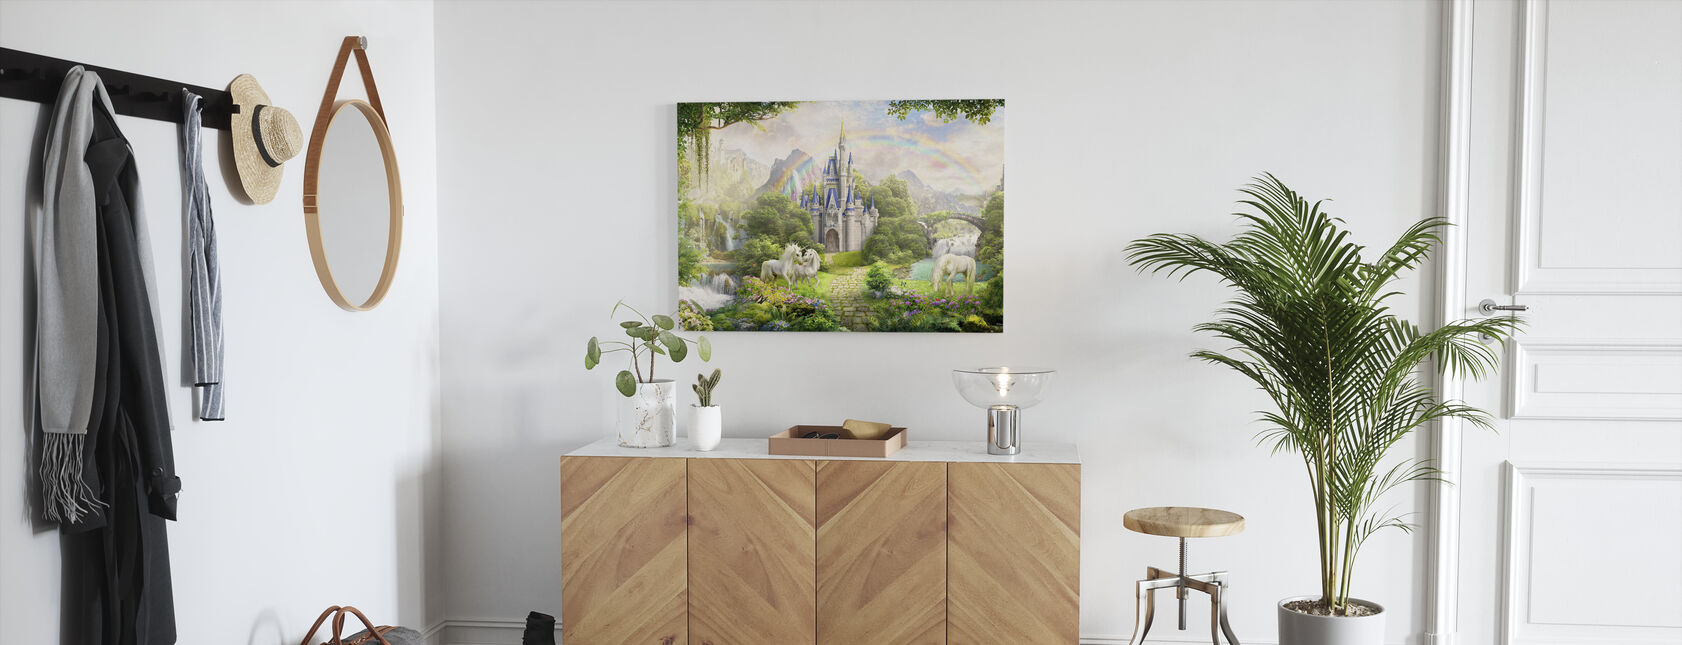 Unicorns Residence - Canvas print - Hallway